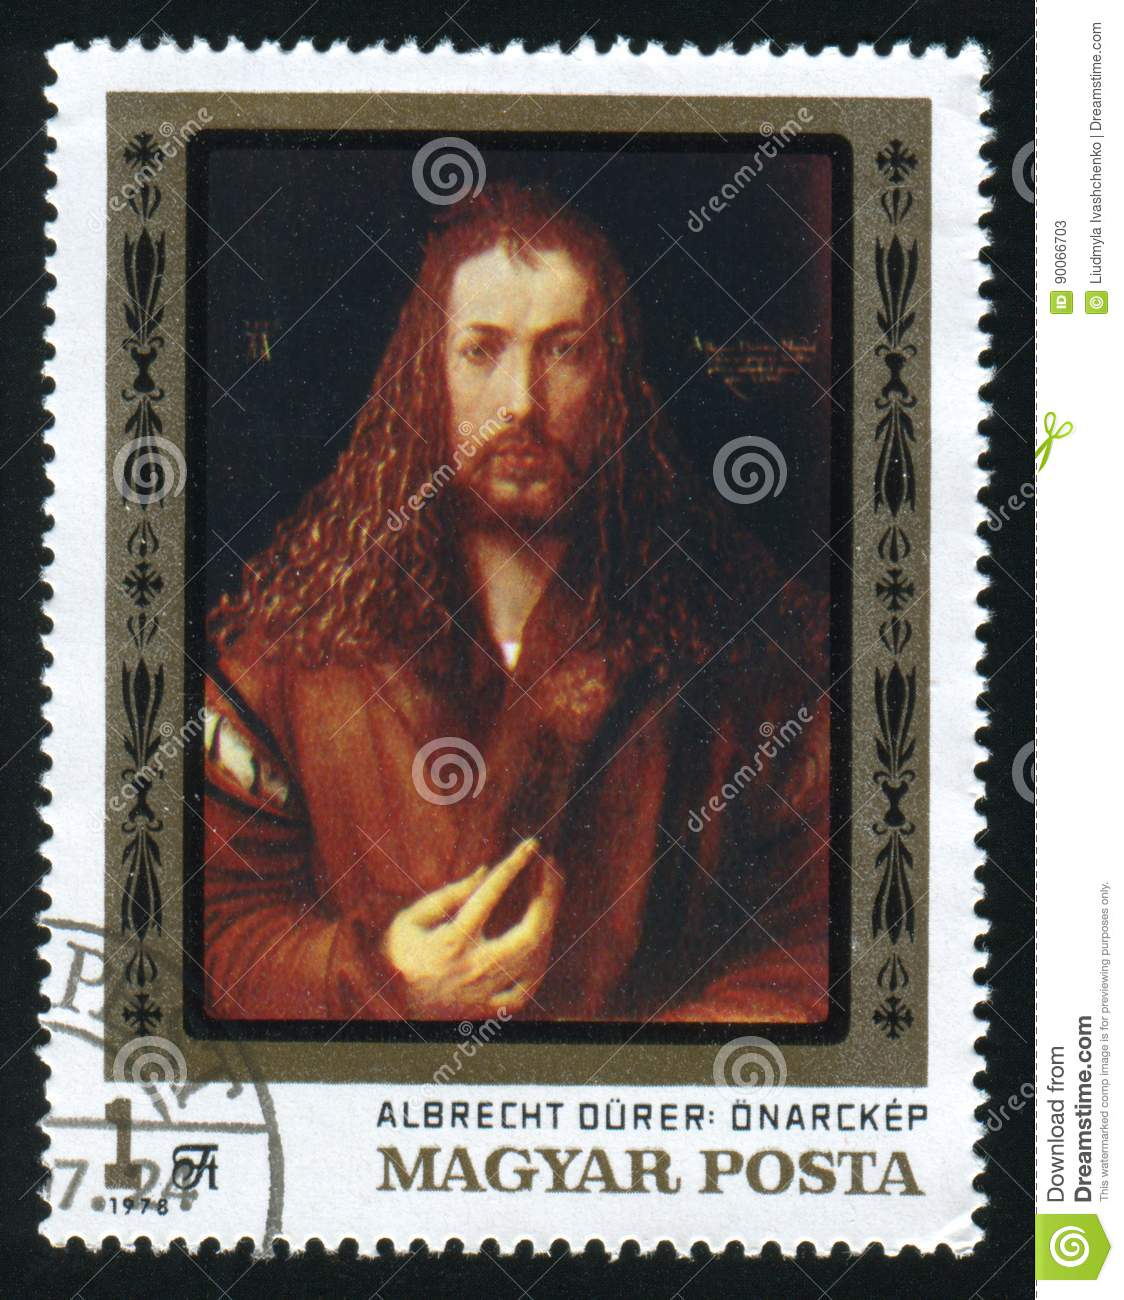 HUNGARY - CIRCA 1978: A postage stamp printed in the Hungary shows painting Albrecht Durer, circa 1978